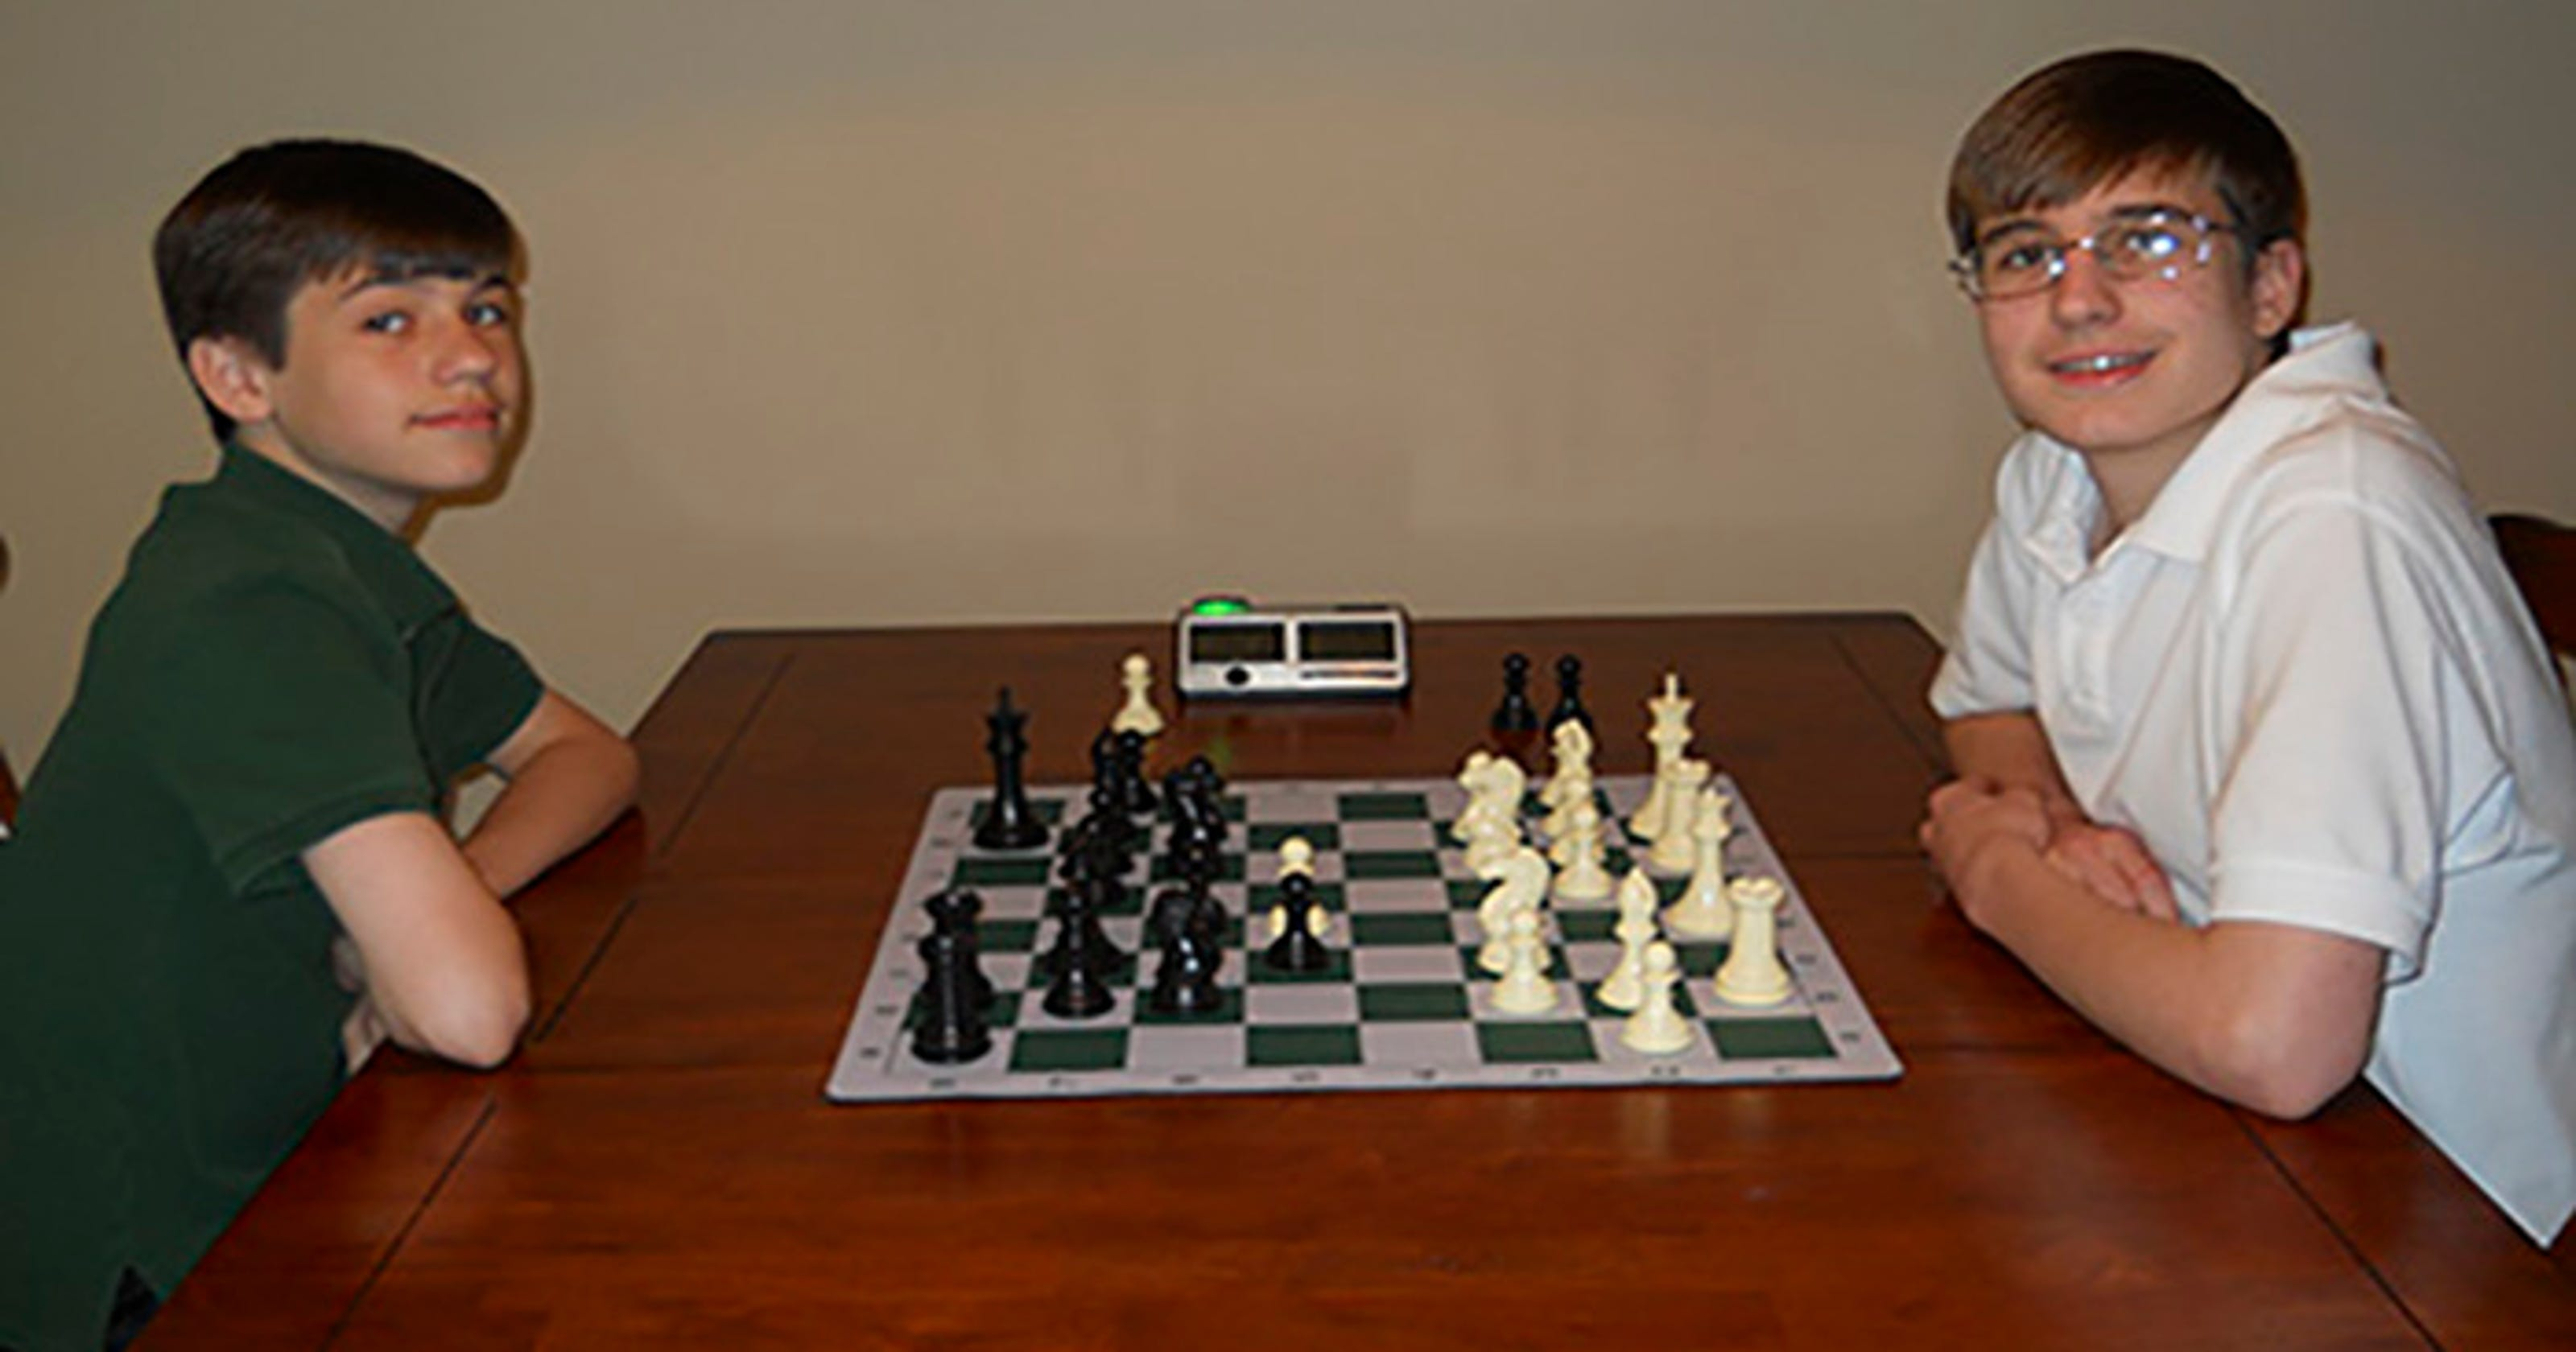 Mississippi brothers compete in national chess tournament